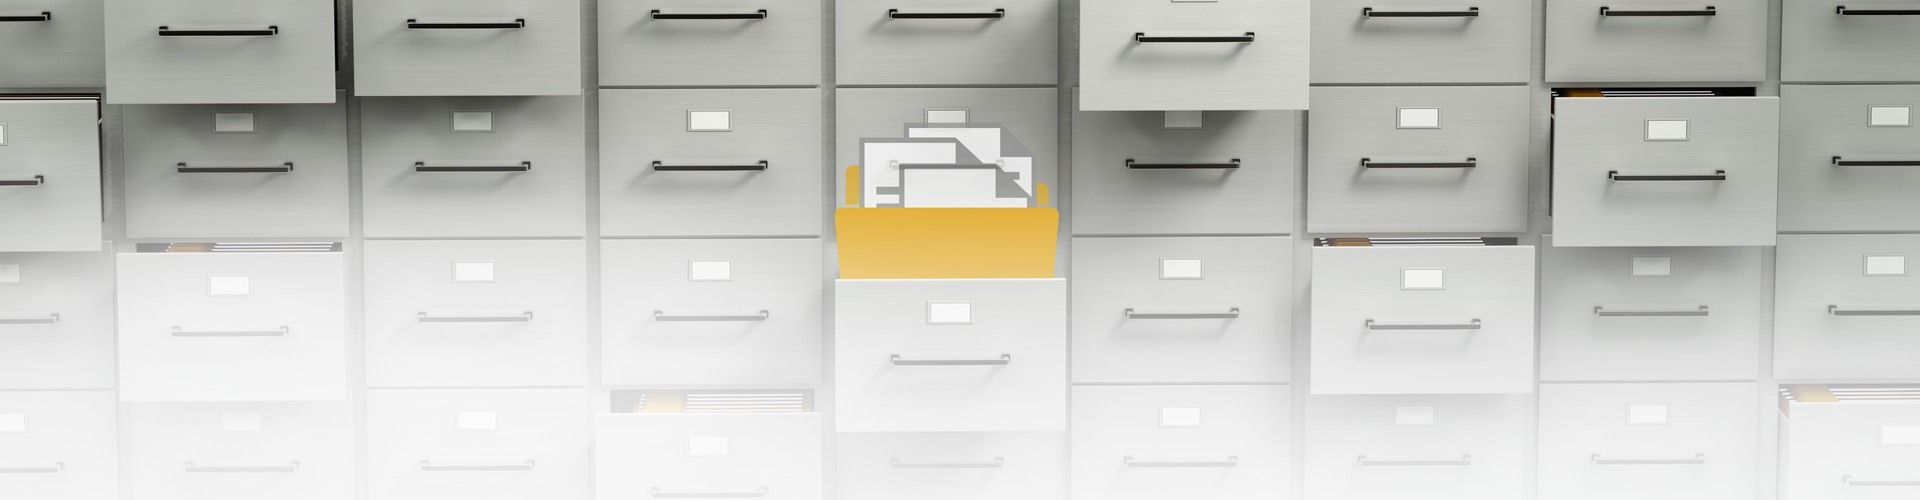 Say goodbye to filing cabinets with document scanning and digital document storage solutions